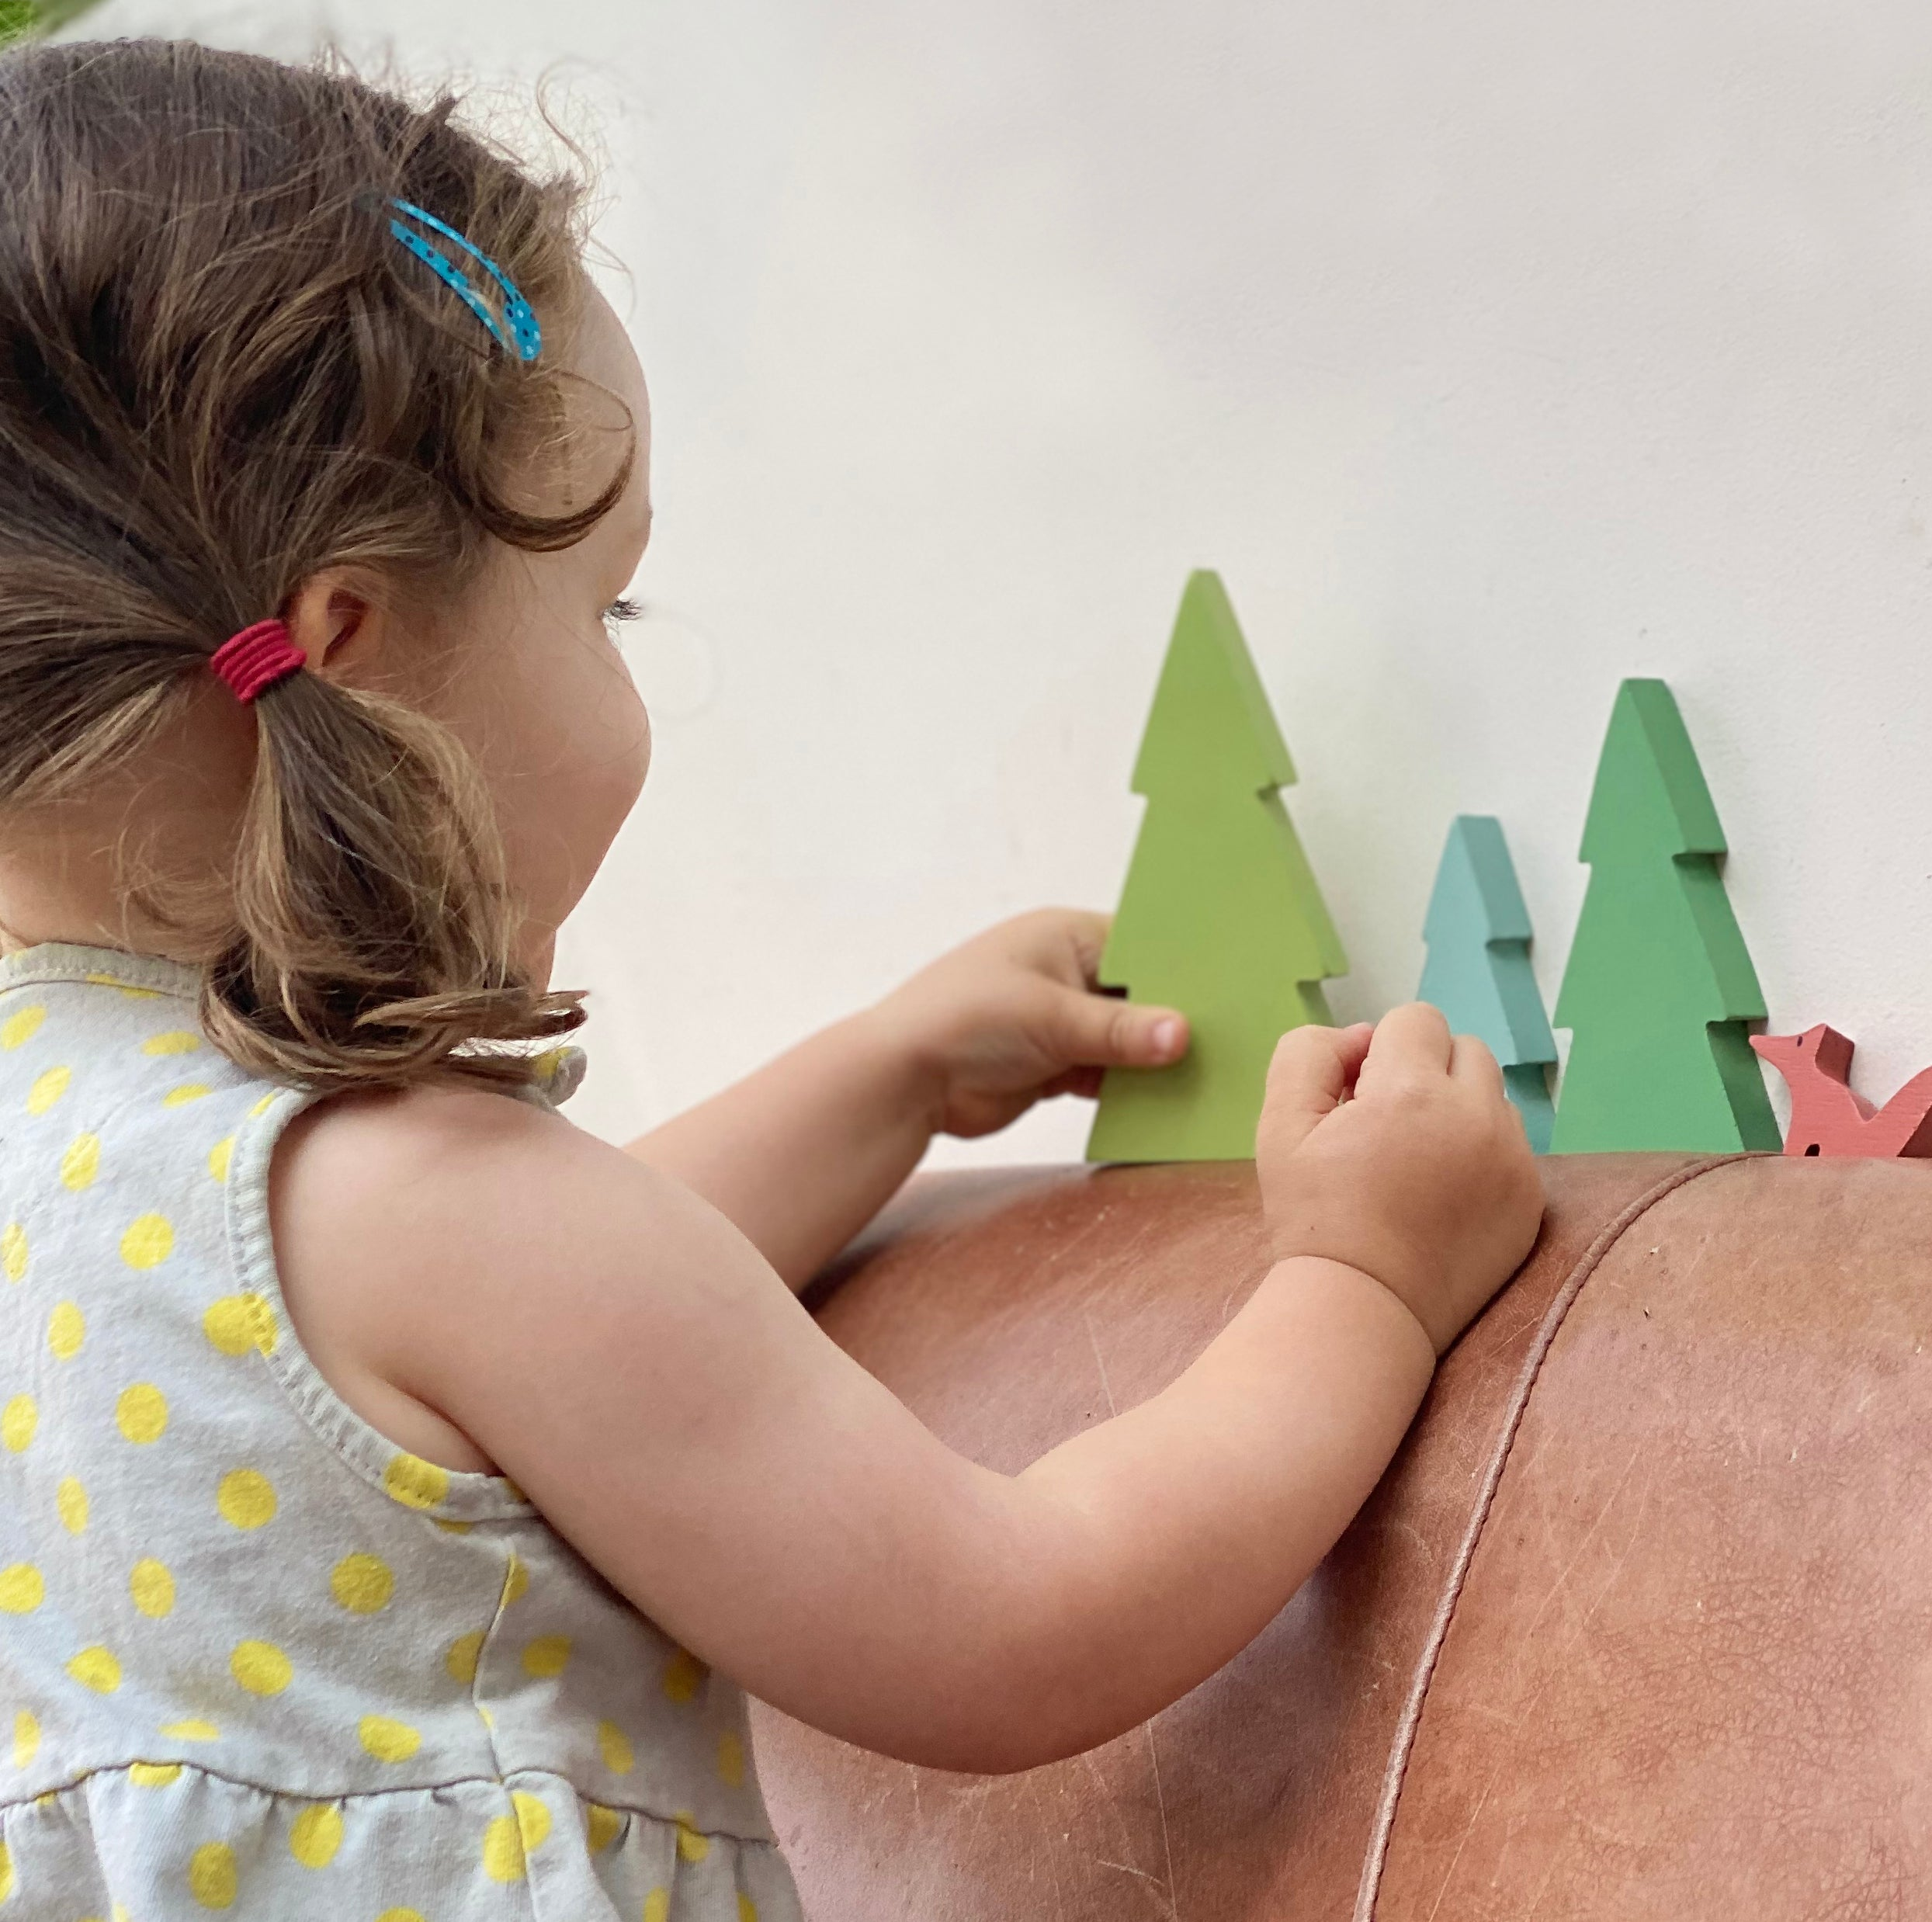 Toys for this generation, trees for the next